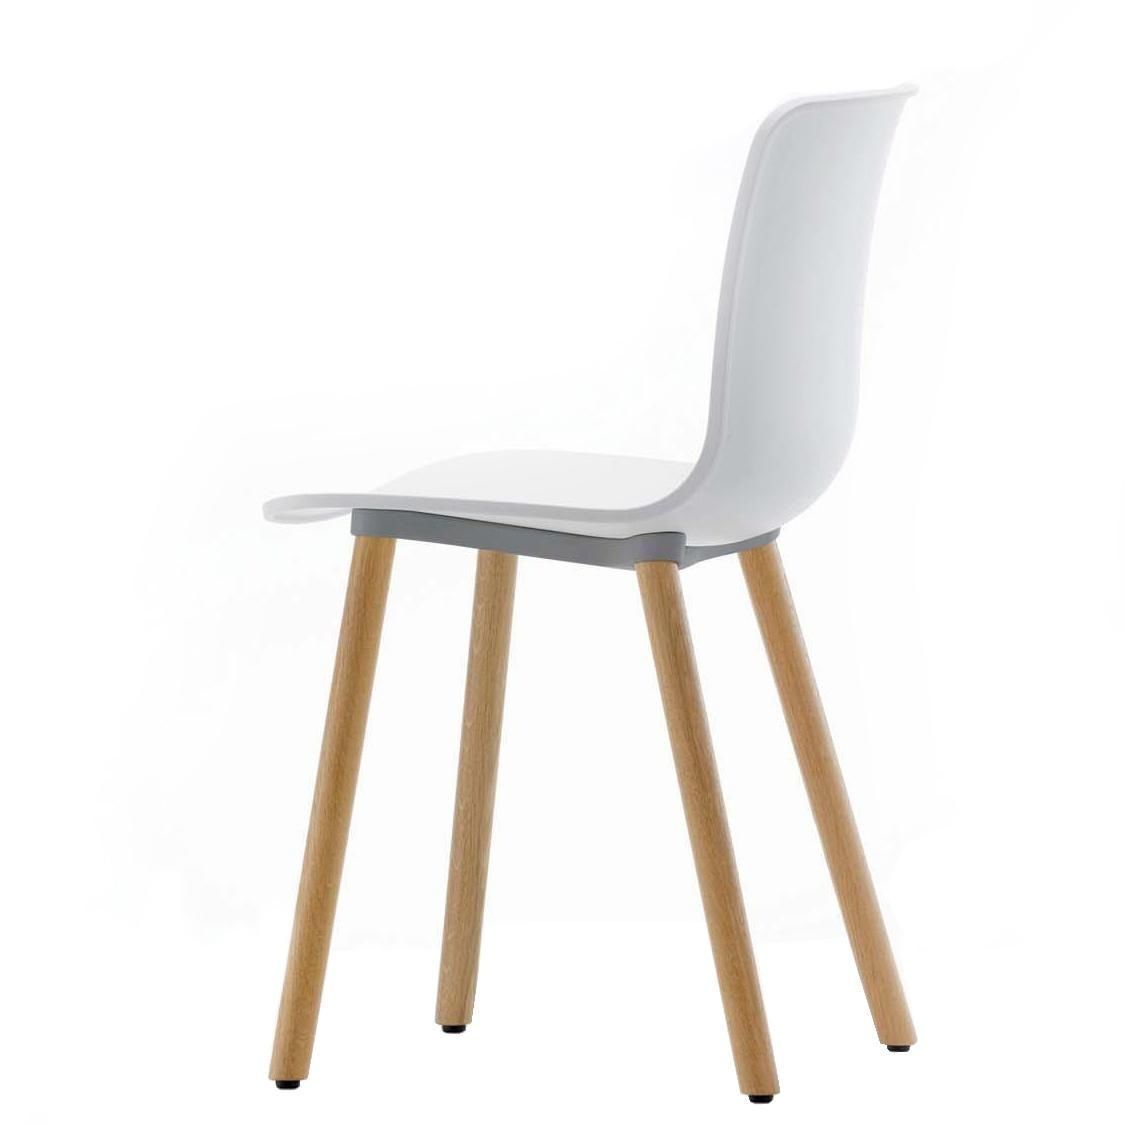 Hal wood chair vitra for Stuhl design dwg